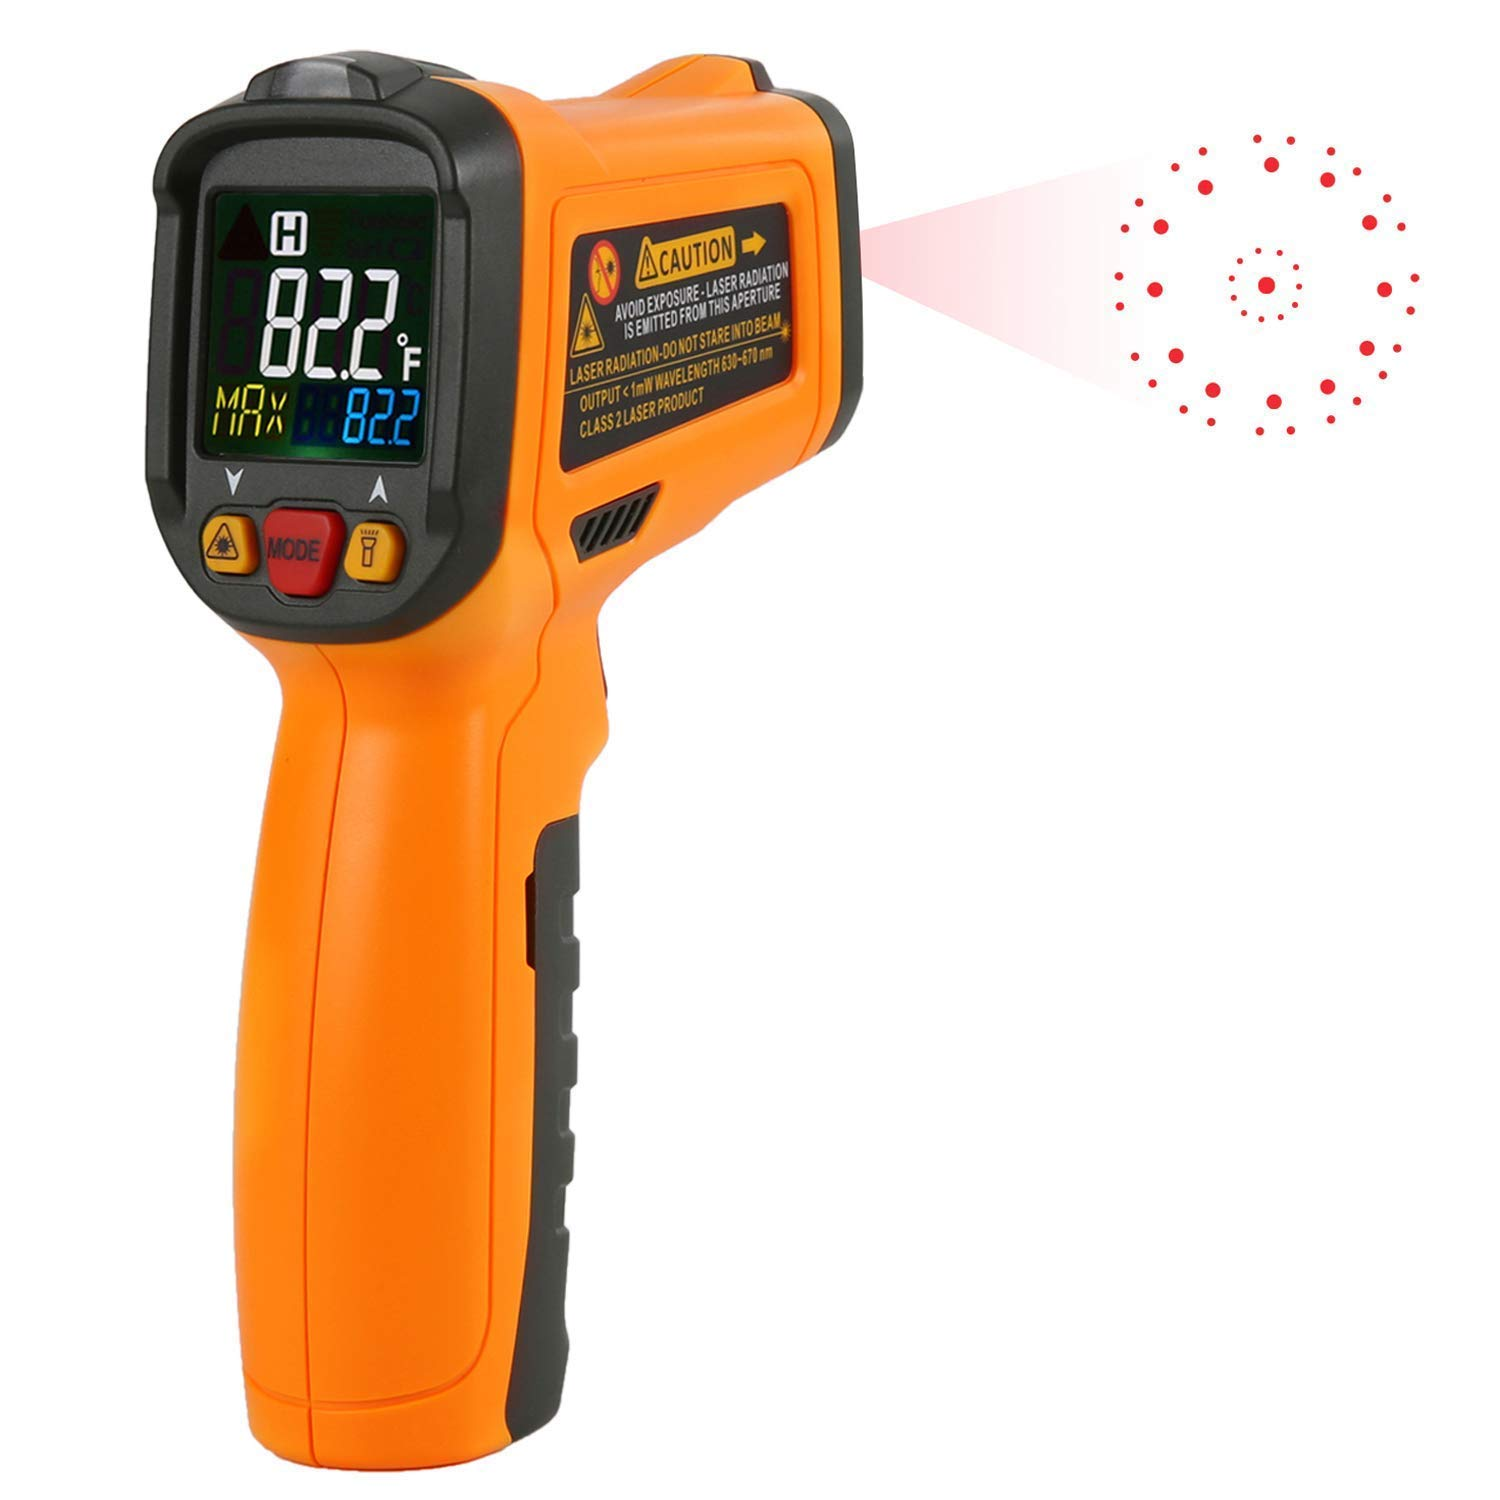 Infrared Thermometer, Non Contact Laser Thermometer Gun for Oven Kitchen Cooking BBQ Automotive Industrial.-58℉ ~ 1022℉ with LCD Display